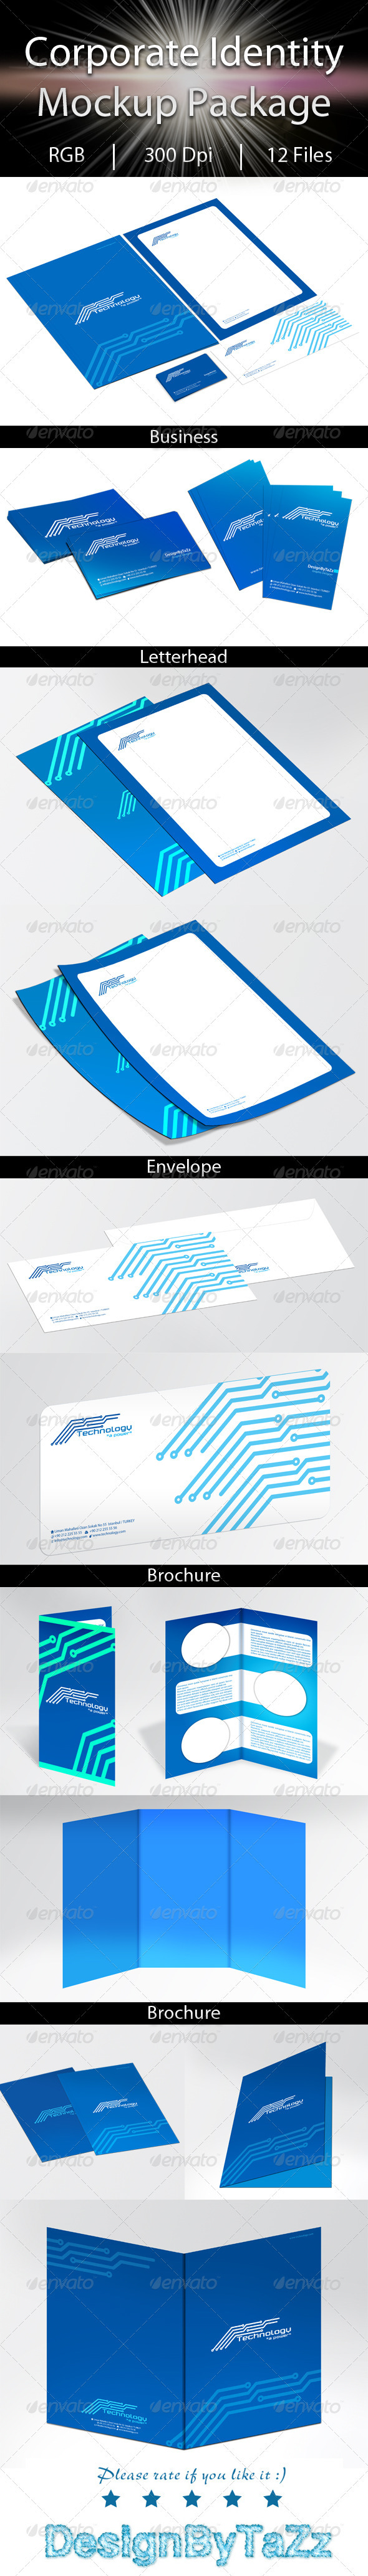 Corporate Identity Mockup Package - Stationery Print